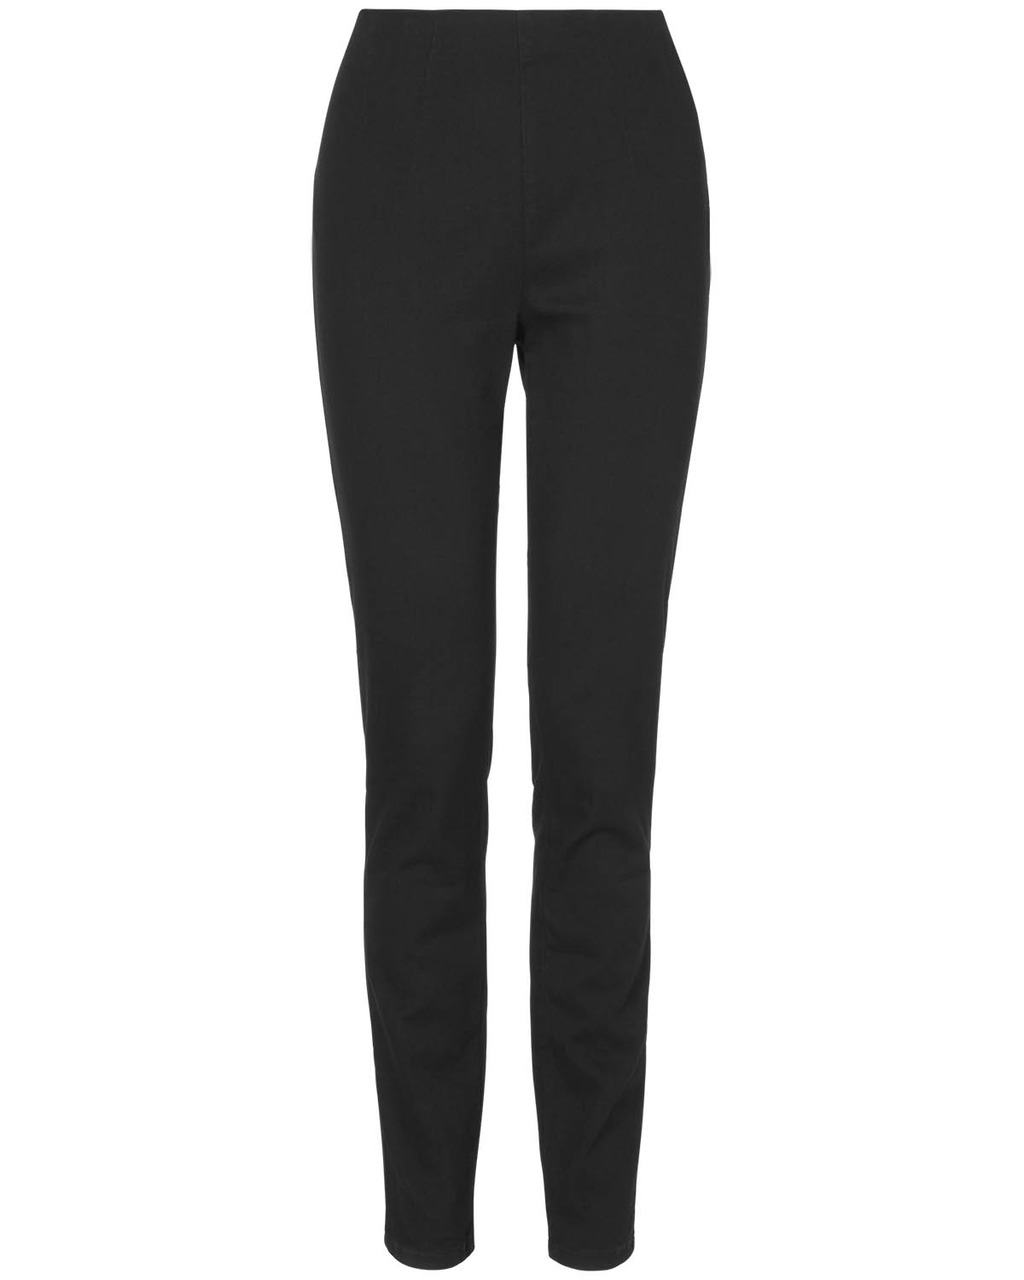 Amina Darted Jegging - length: standard; pattern: plain; style: jeggings; waist: mid/regular rise; predominant colour: black; occasions: casual, evening, creative work; fibres: cotton - stretch; texture group: denim; pattern type: fabric; season: s/s 2014